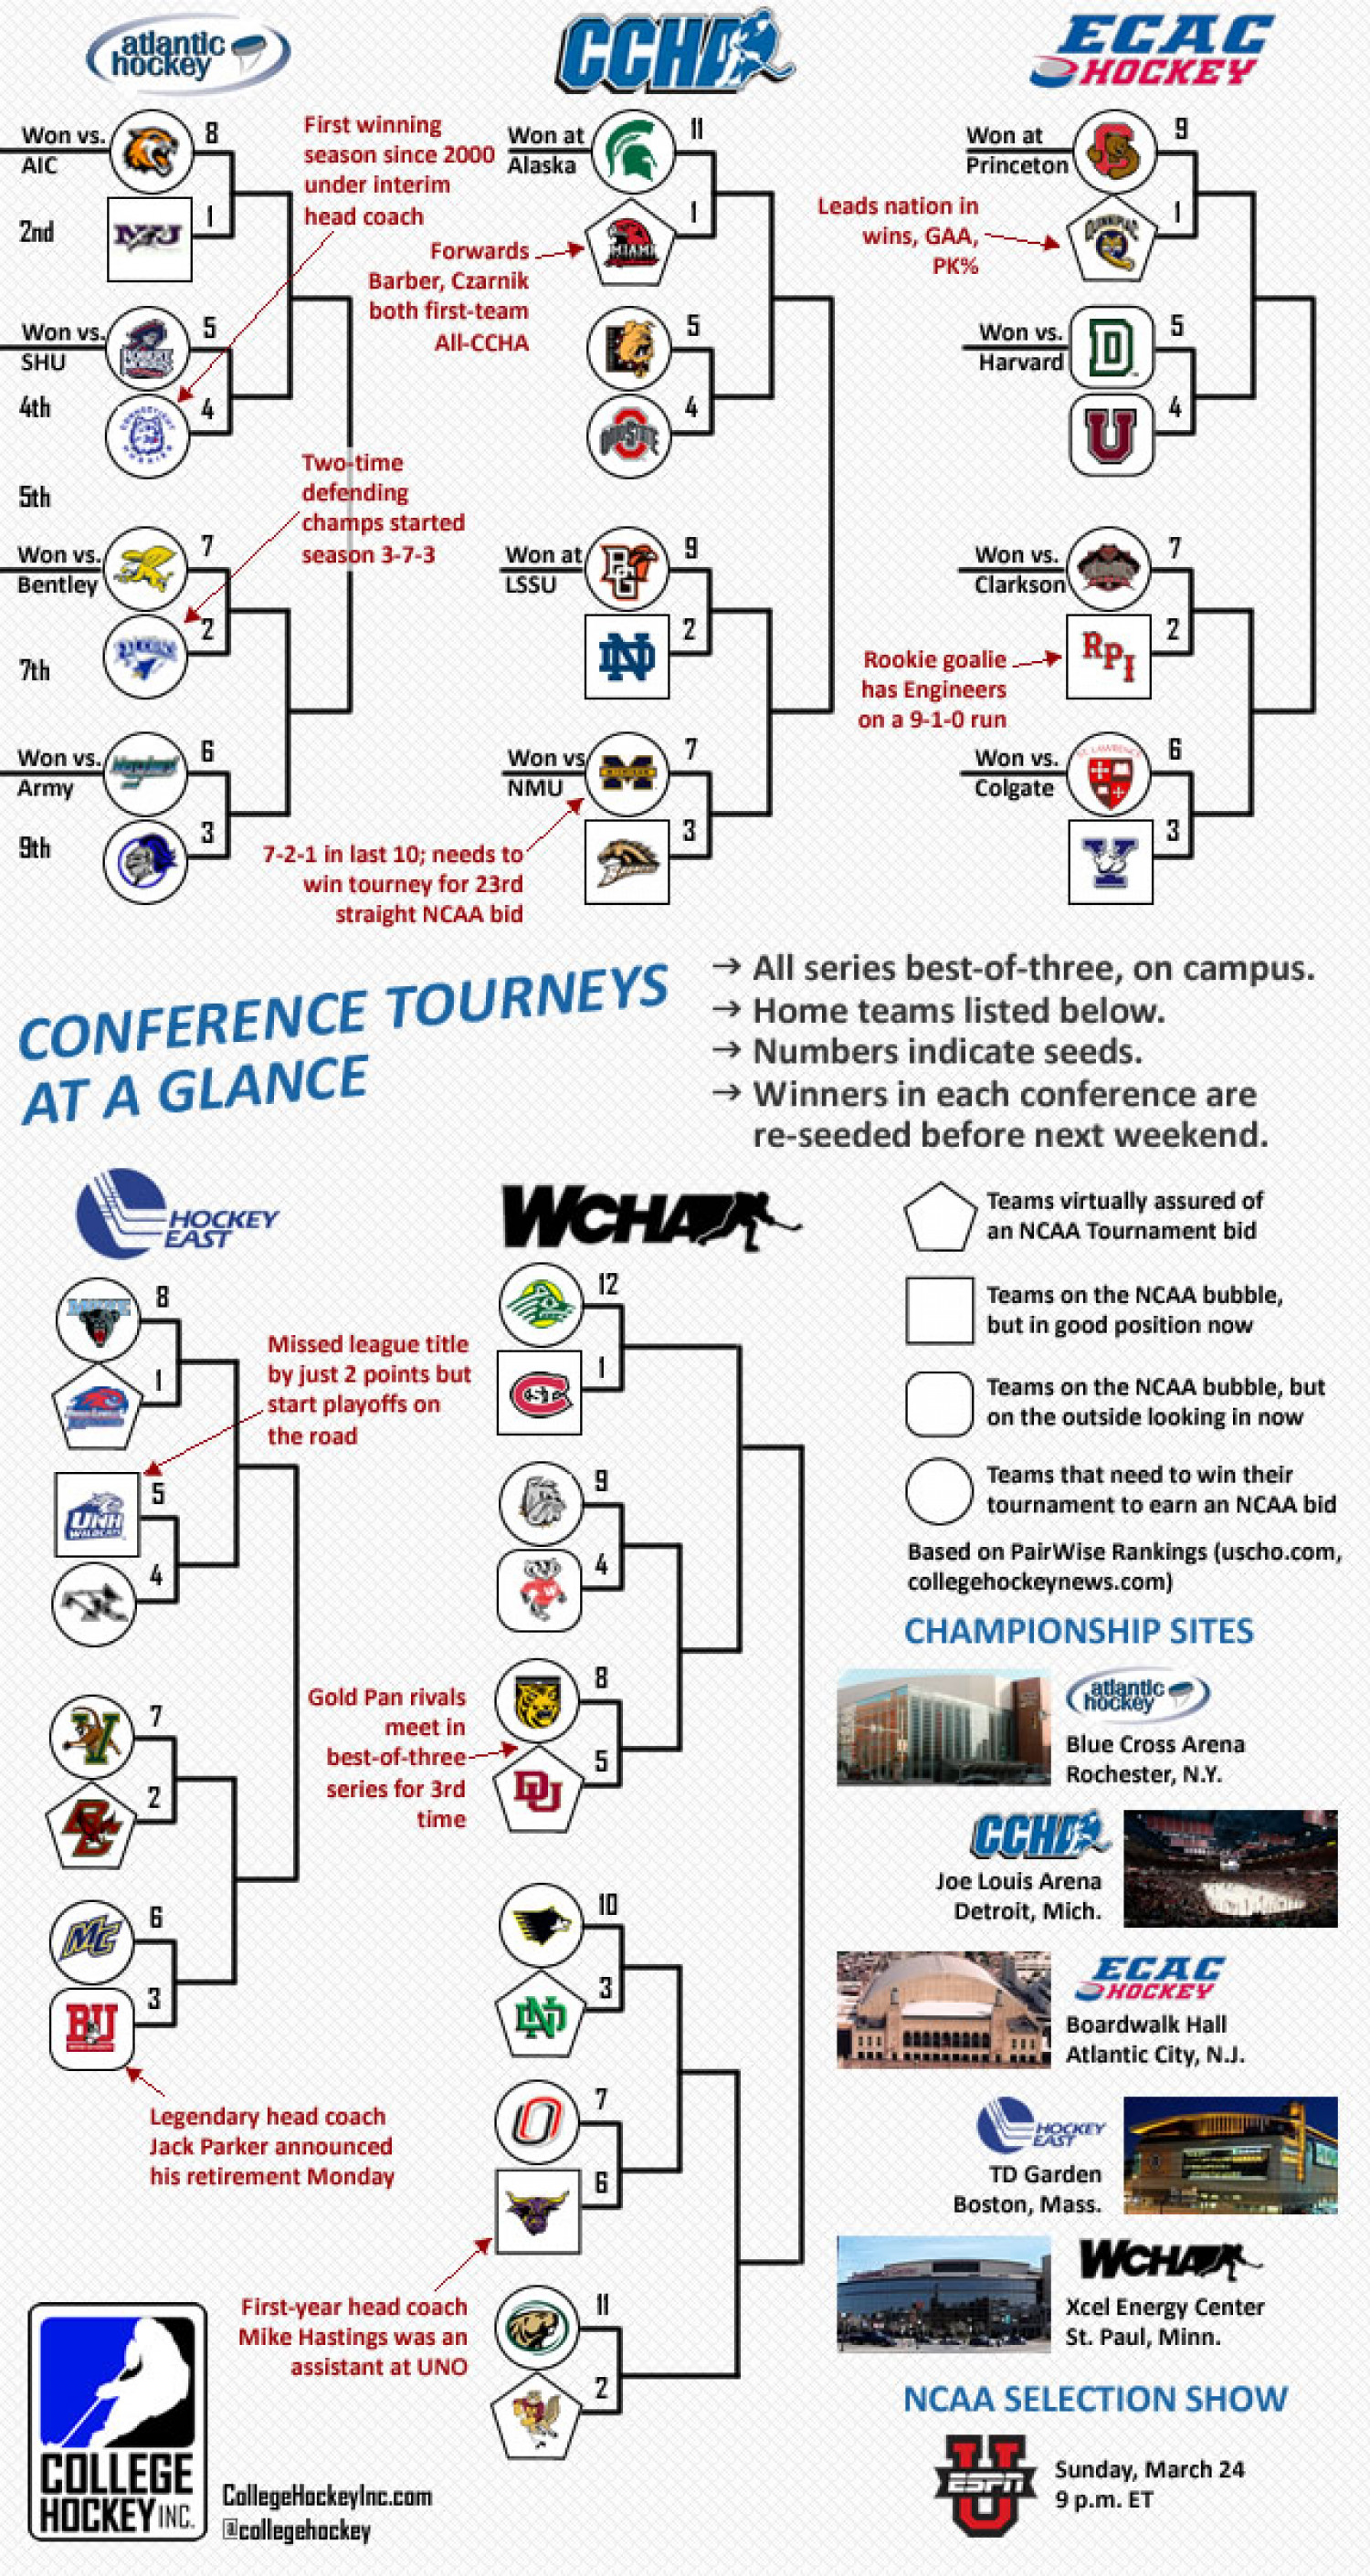 College Hockey's Conference Tournaments Infographic